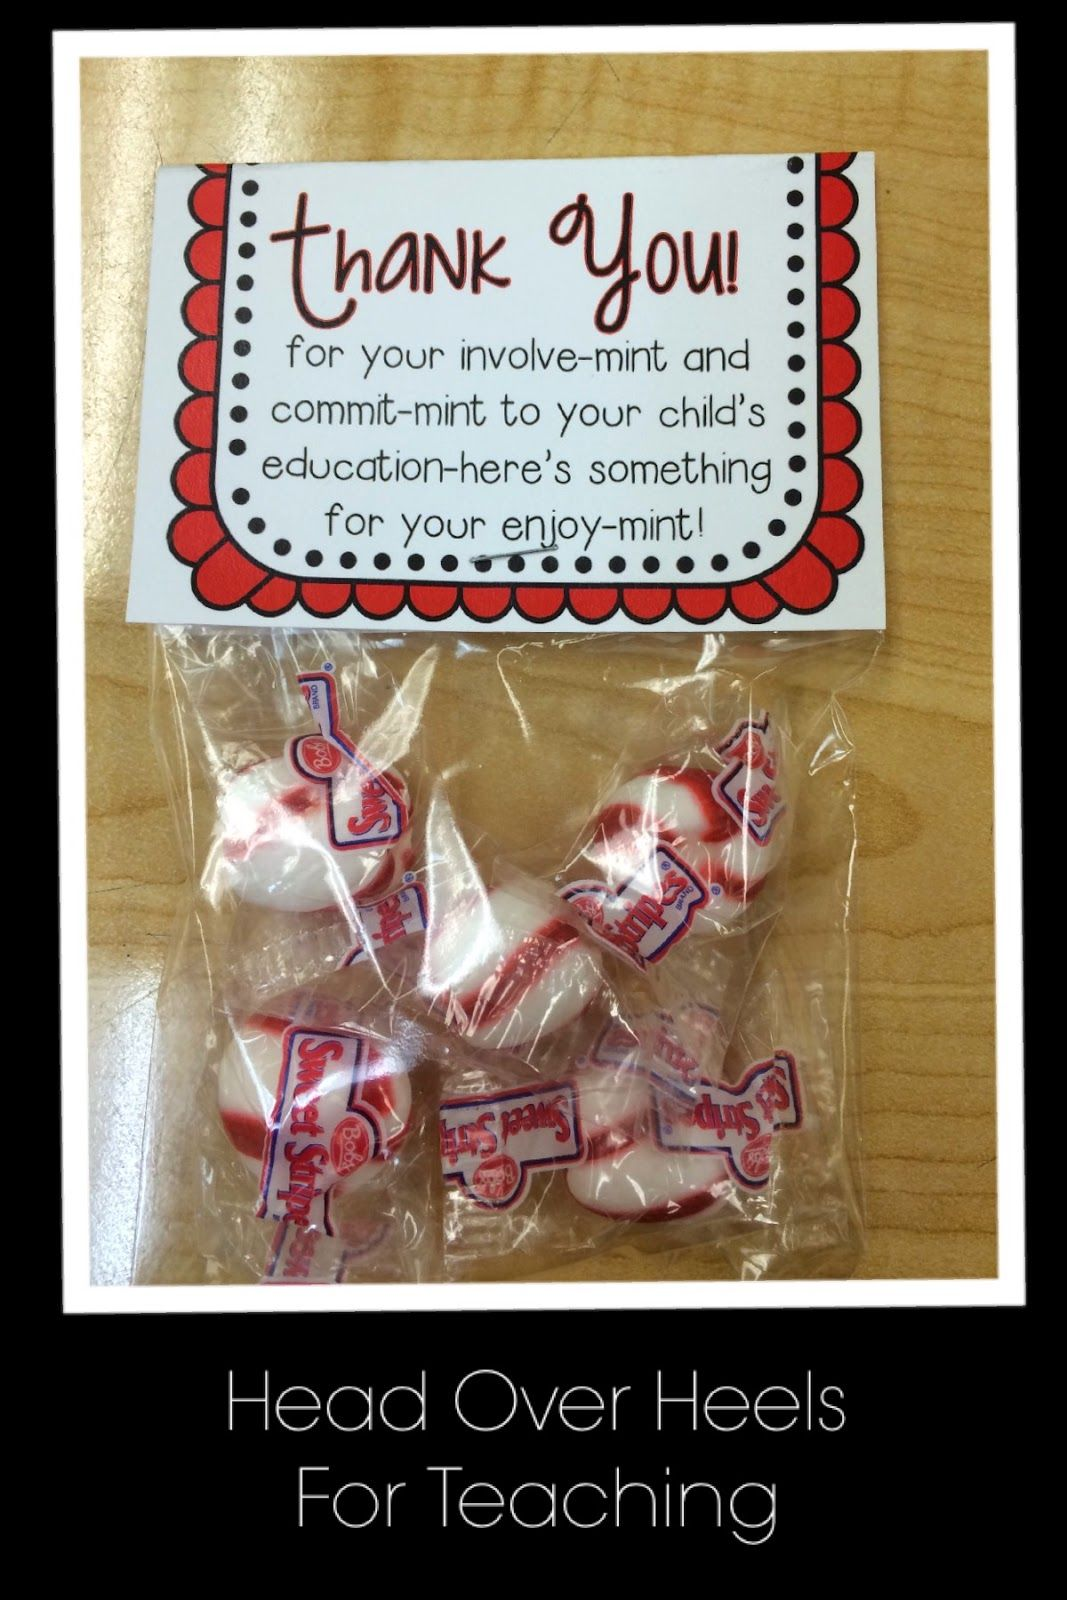 open house give parents a thank you note for their involve mint freebie